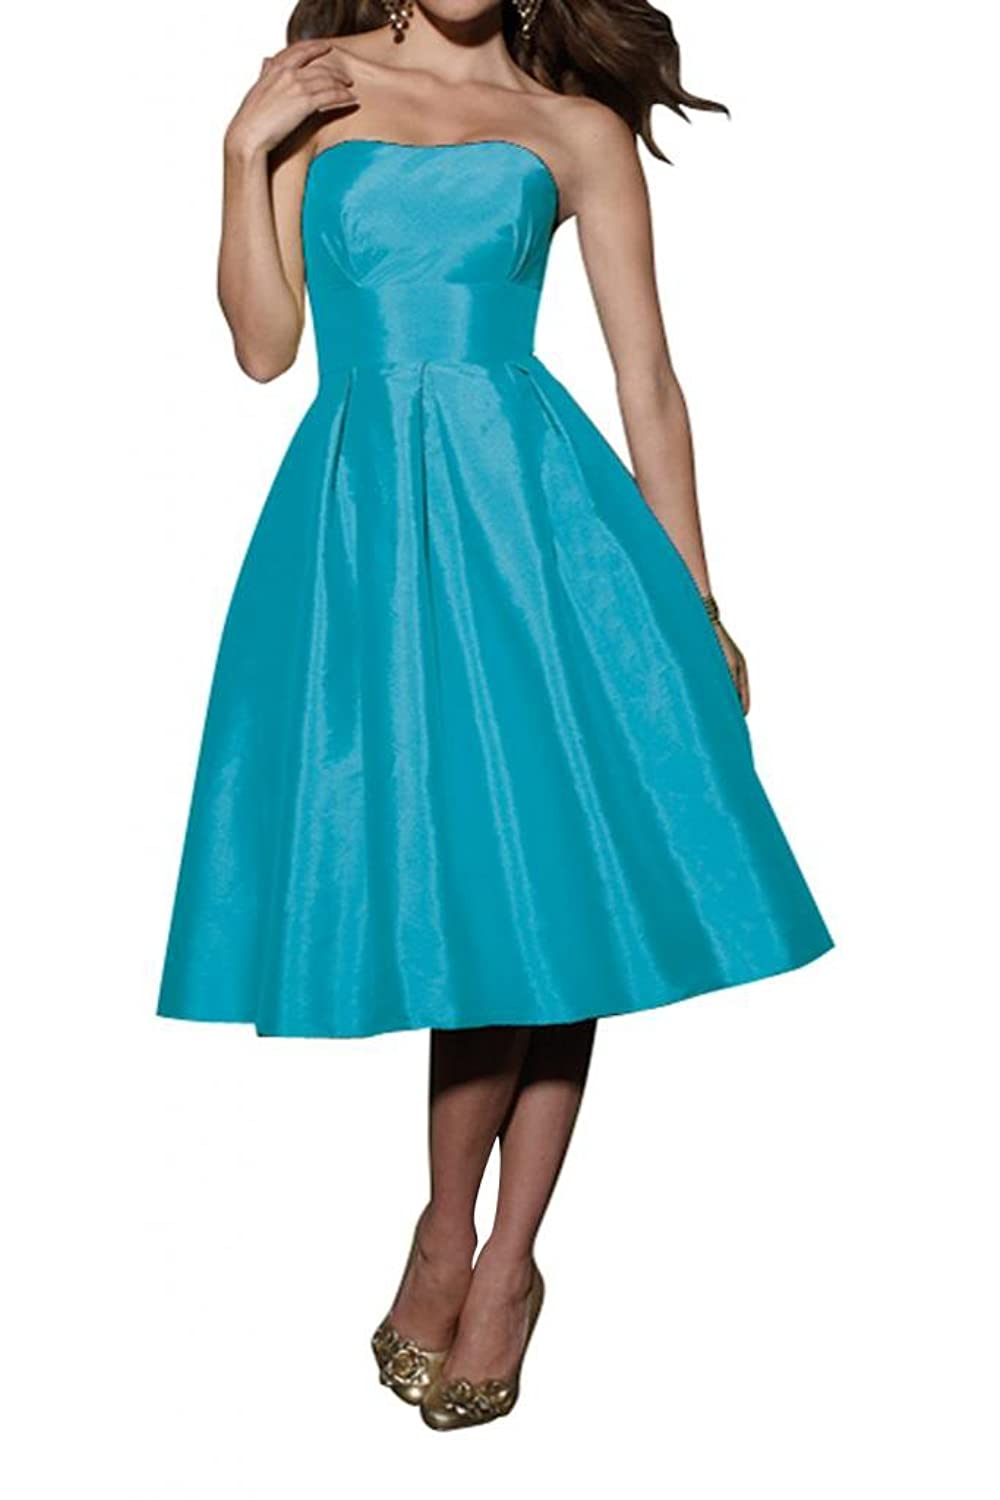 Gorgeous Bride Strapless Shiny Ball Gown Ruffle Sexy Taffeta Bridesmaid Dress